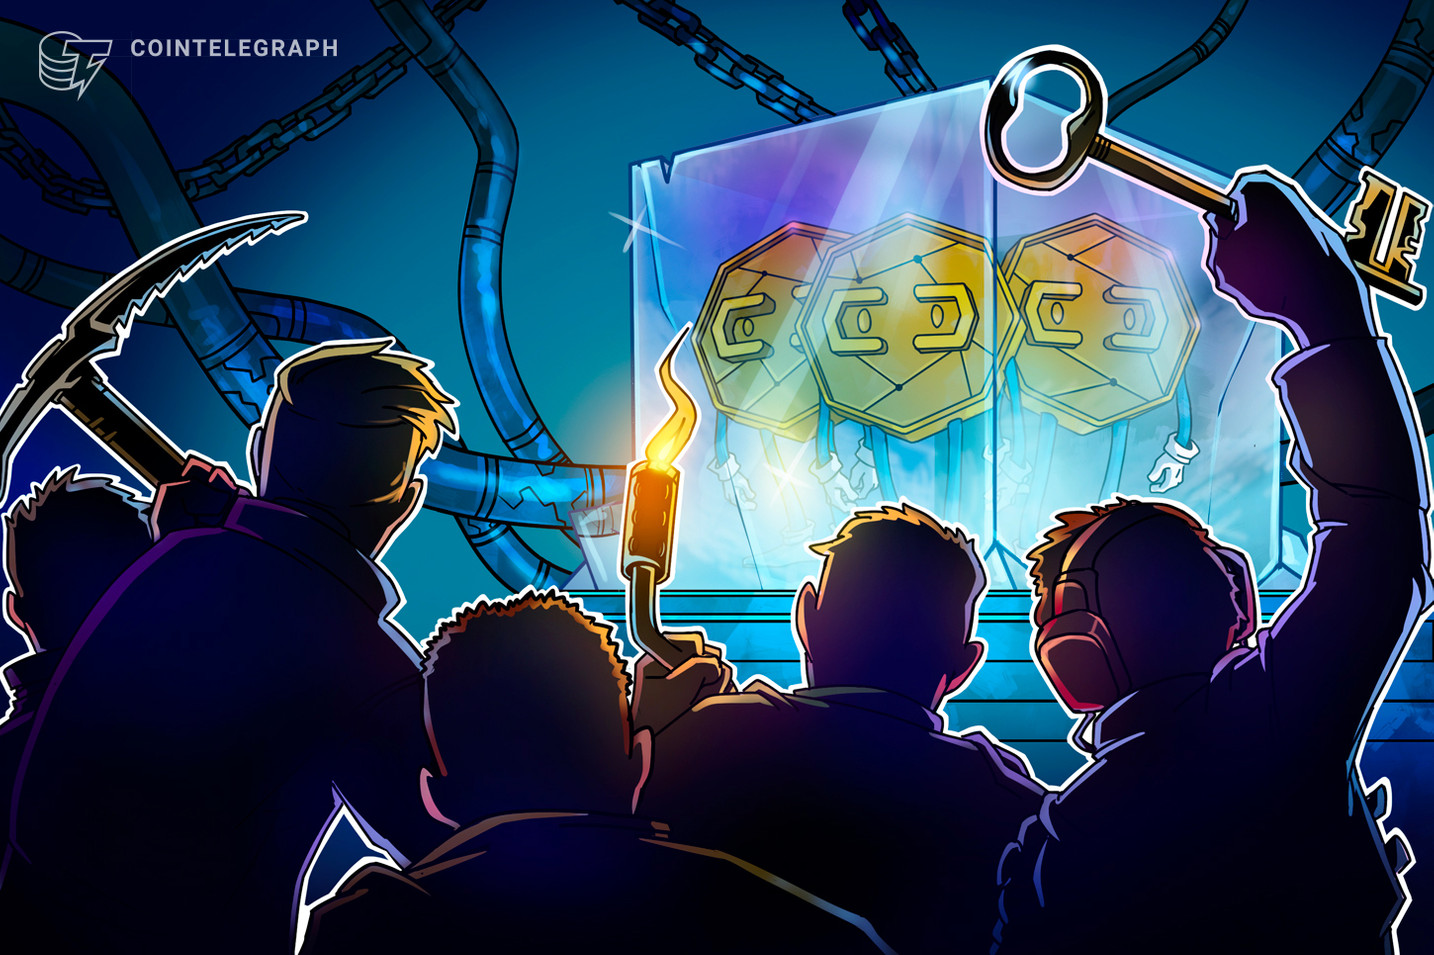 Proof of Keys Event May Highlight Centralization of Crypto, but Some of Its Claims Are Unfounded